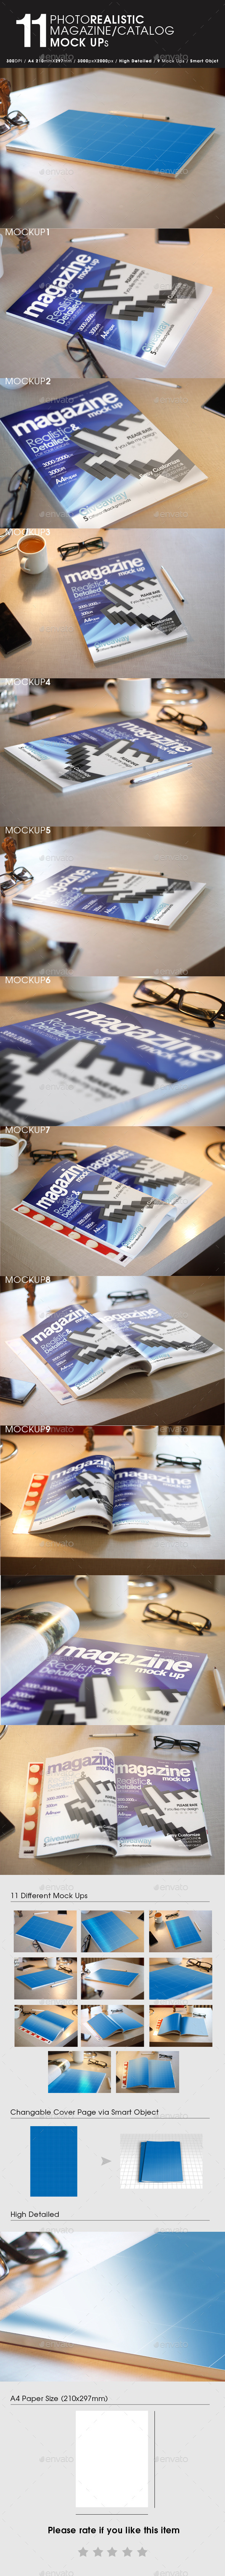 GraphicRiver 11 Photorealistic Magazine Mock Up 9456314